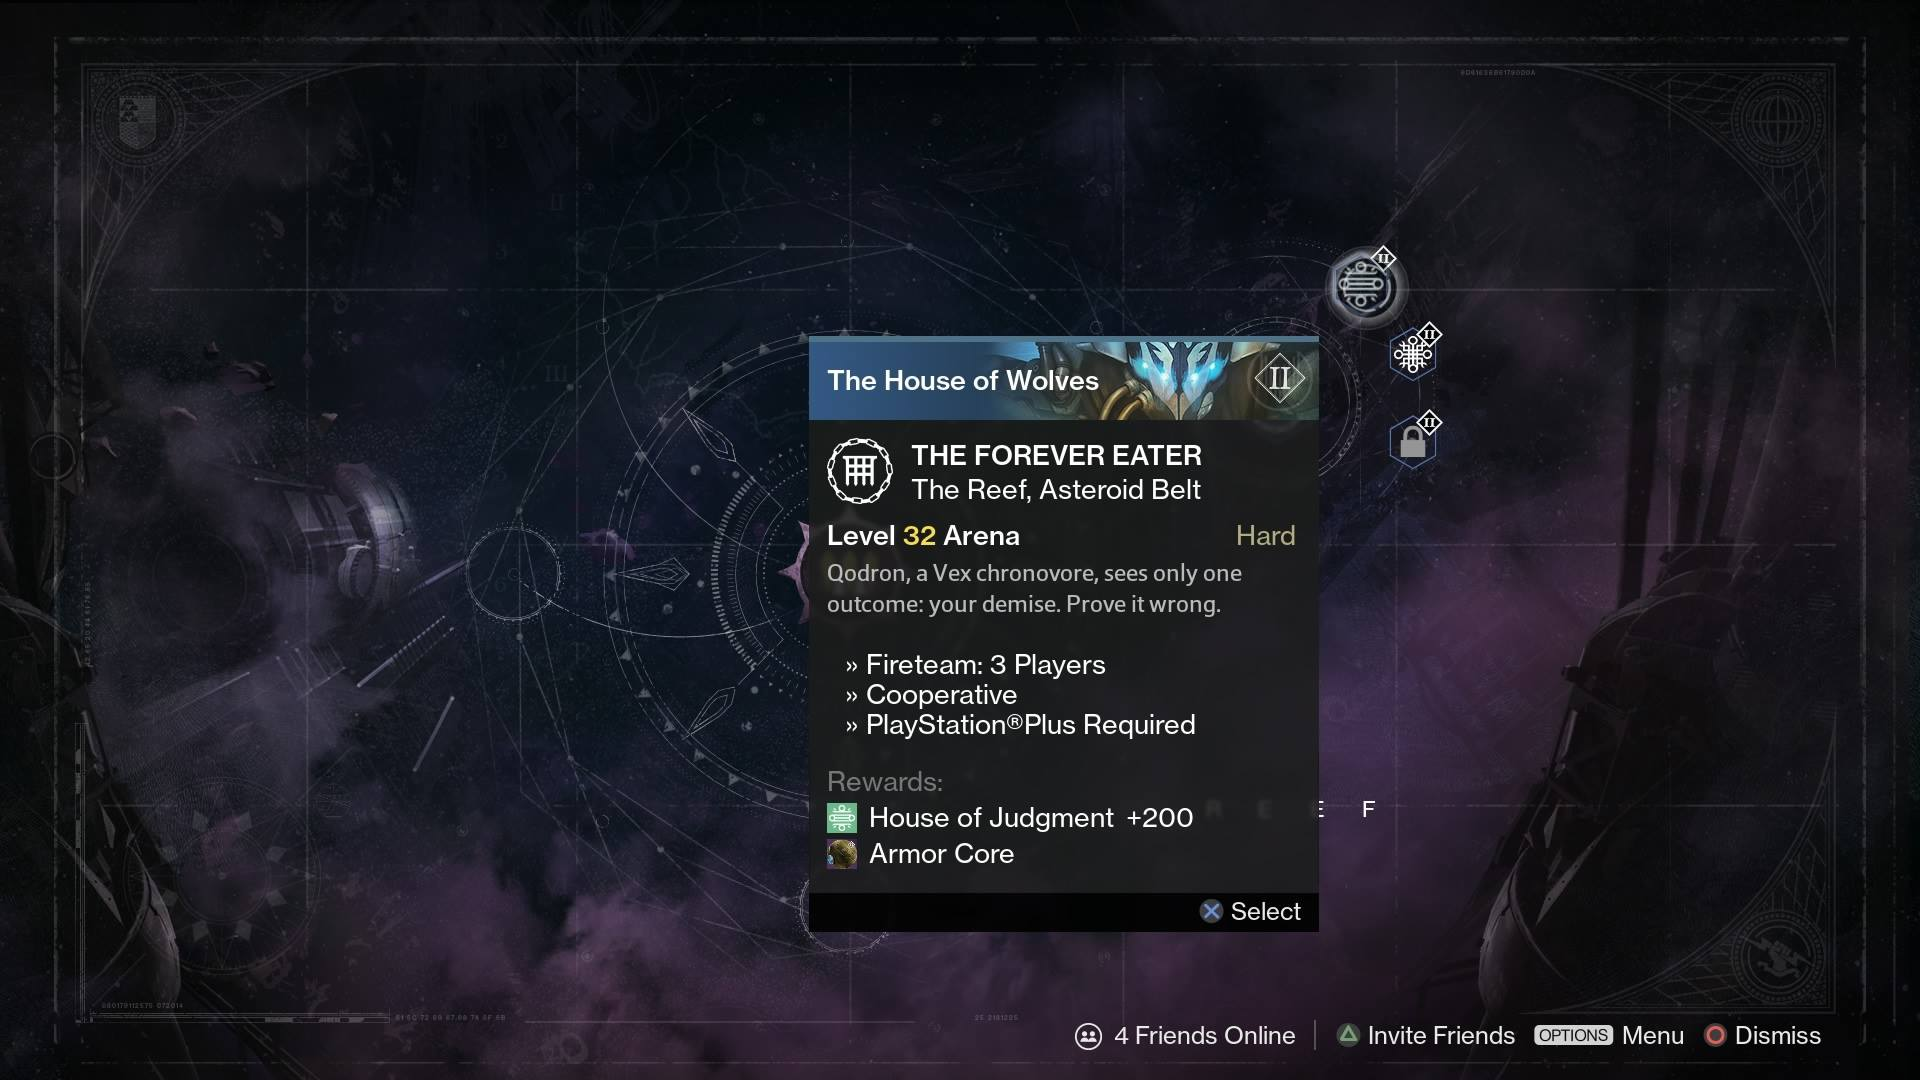 Destiny weekly reset for June 2, new strikes and Prison of